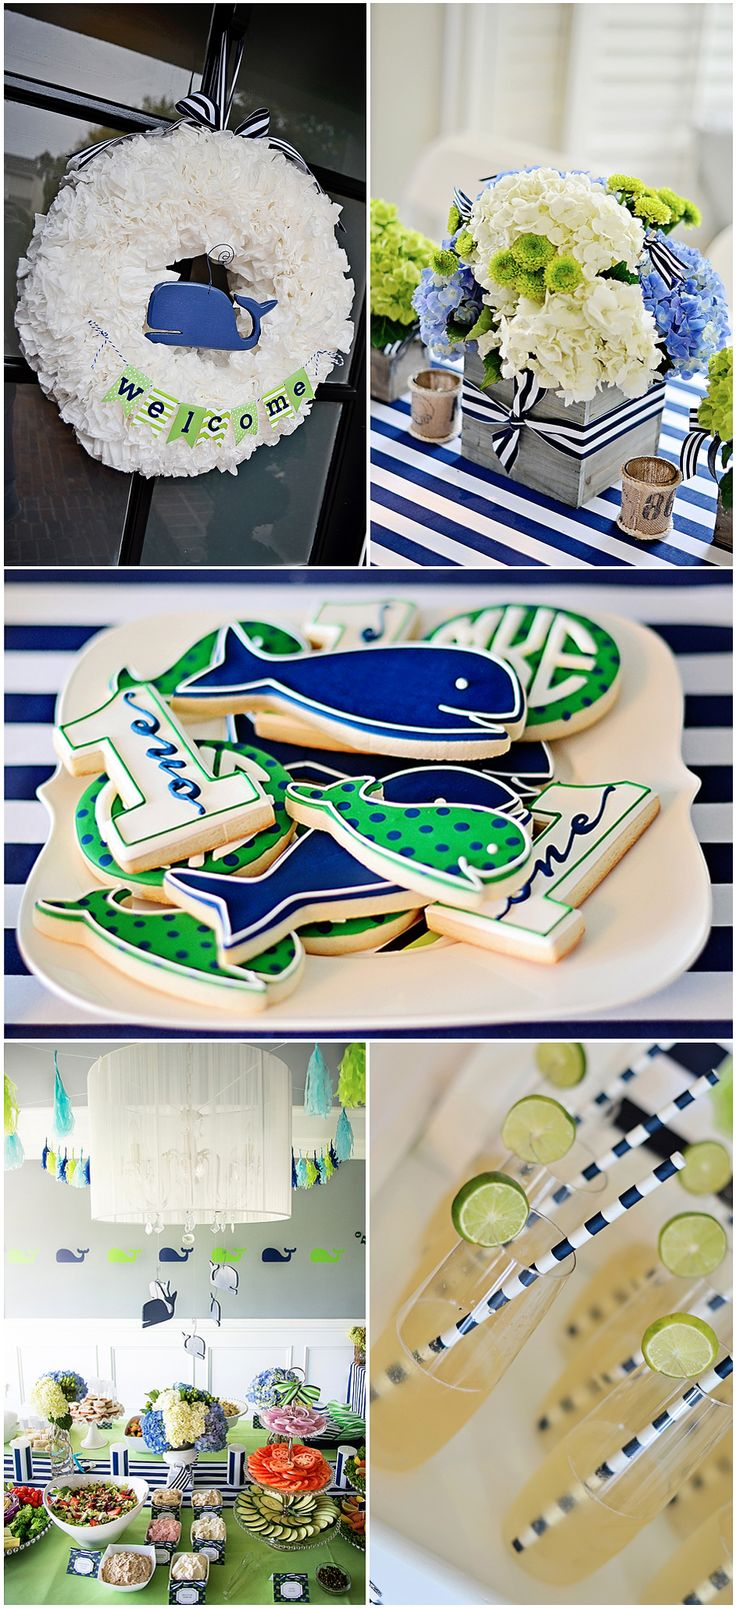 Do you have a one-year-old who is always ready to have a whale of a good time? Then have we got the first-birthday party inspiration for you! Plan one heckuva preppy and nautical first-birthday party with this simple (yet awesome) inspiration. Deck the birthday boy or girl out in some sailor stripes or country-club-esque attire to complete the look.